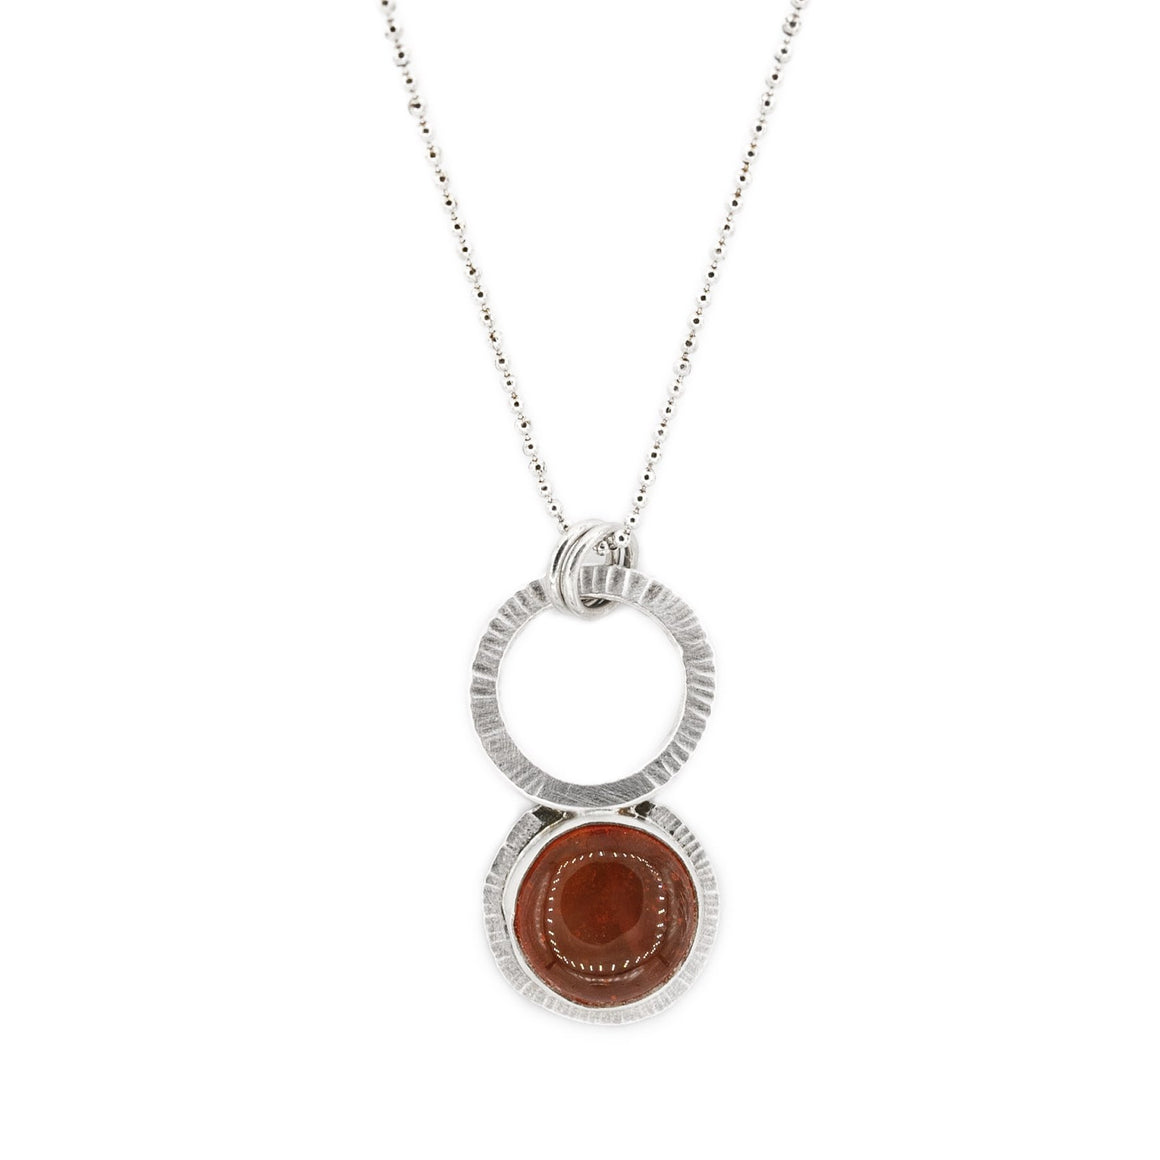 Oregon Fire Opal with Radiant Texture and Circle in Silver by Original Sin Jewelry